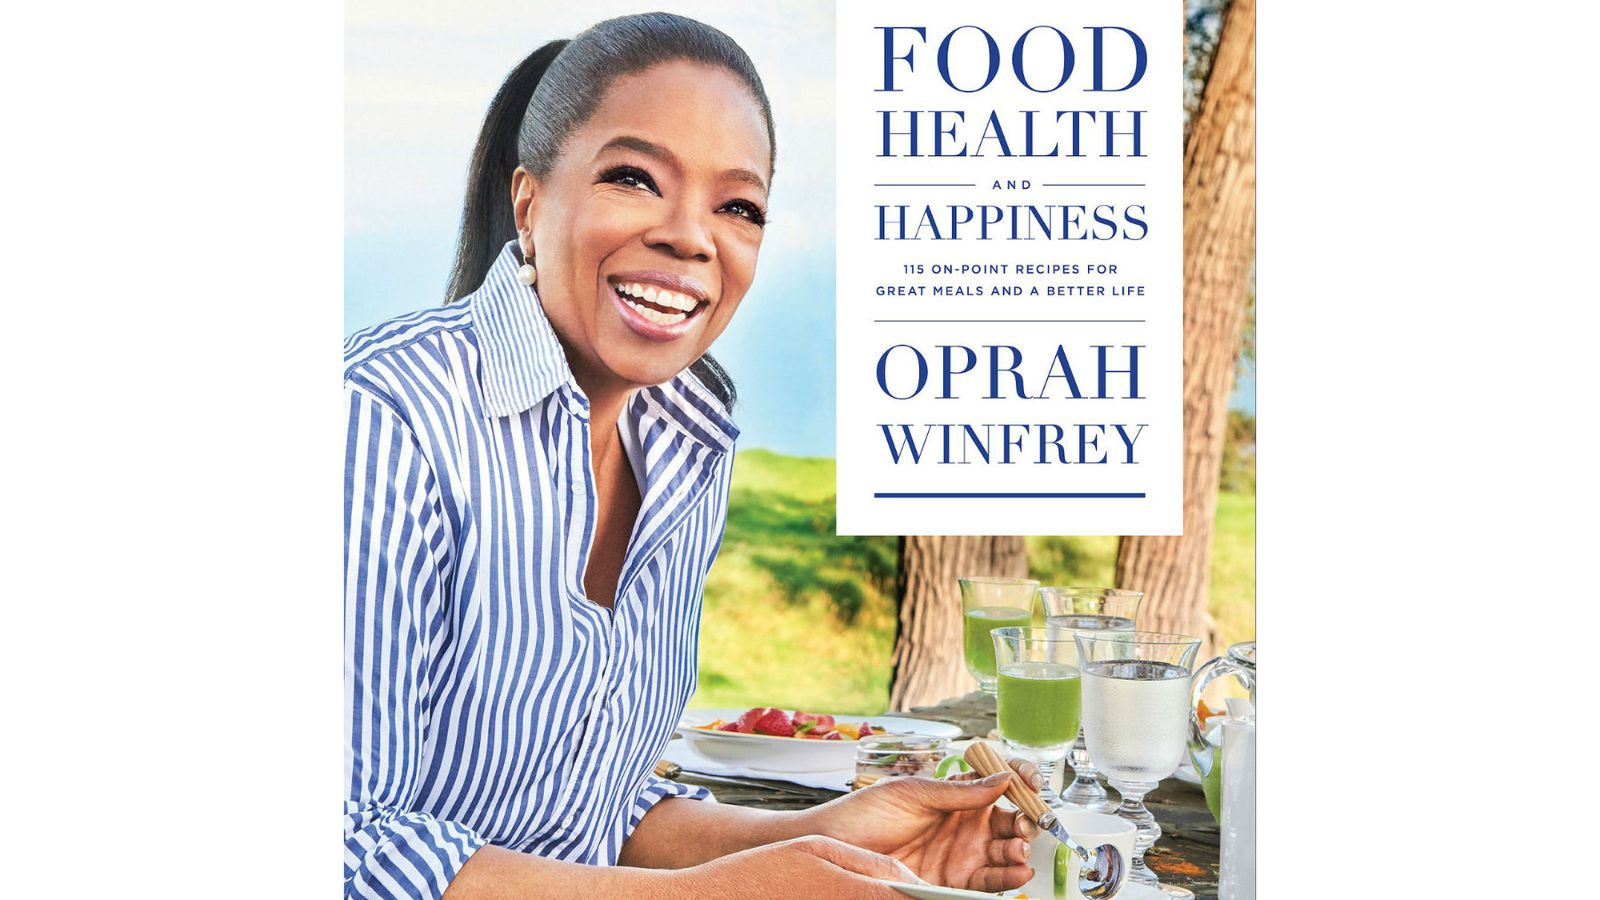 culture essay glamour misery oprah popular winfrey Essarily begs fundamental questions about the study of market culture:  unusual  oprah winfrey has made herself famous through her benev-  major  exception is eva illouz's oprah winfrey and the glamour of misery: an essay on  popular.